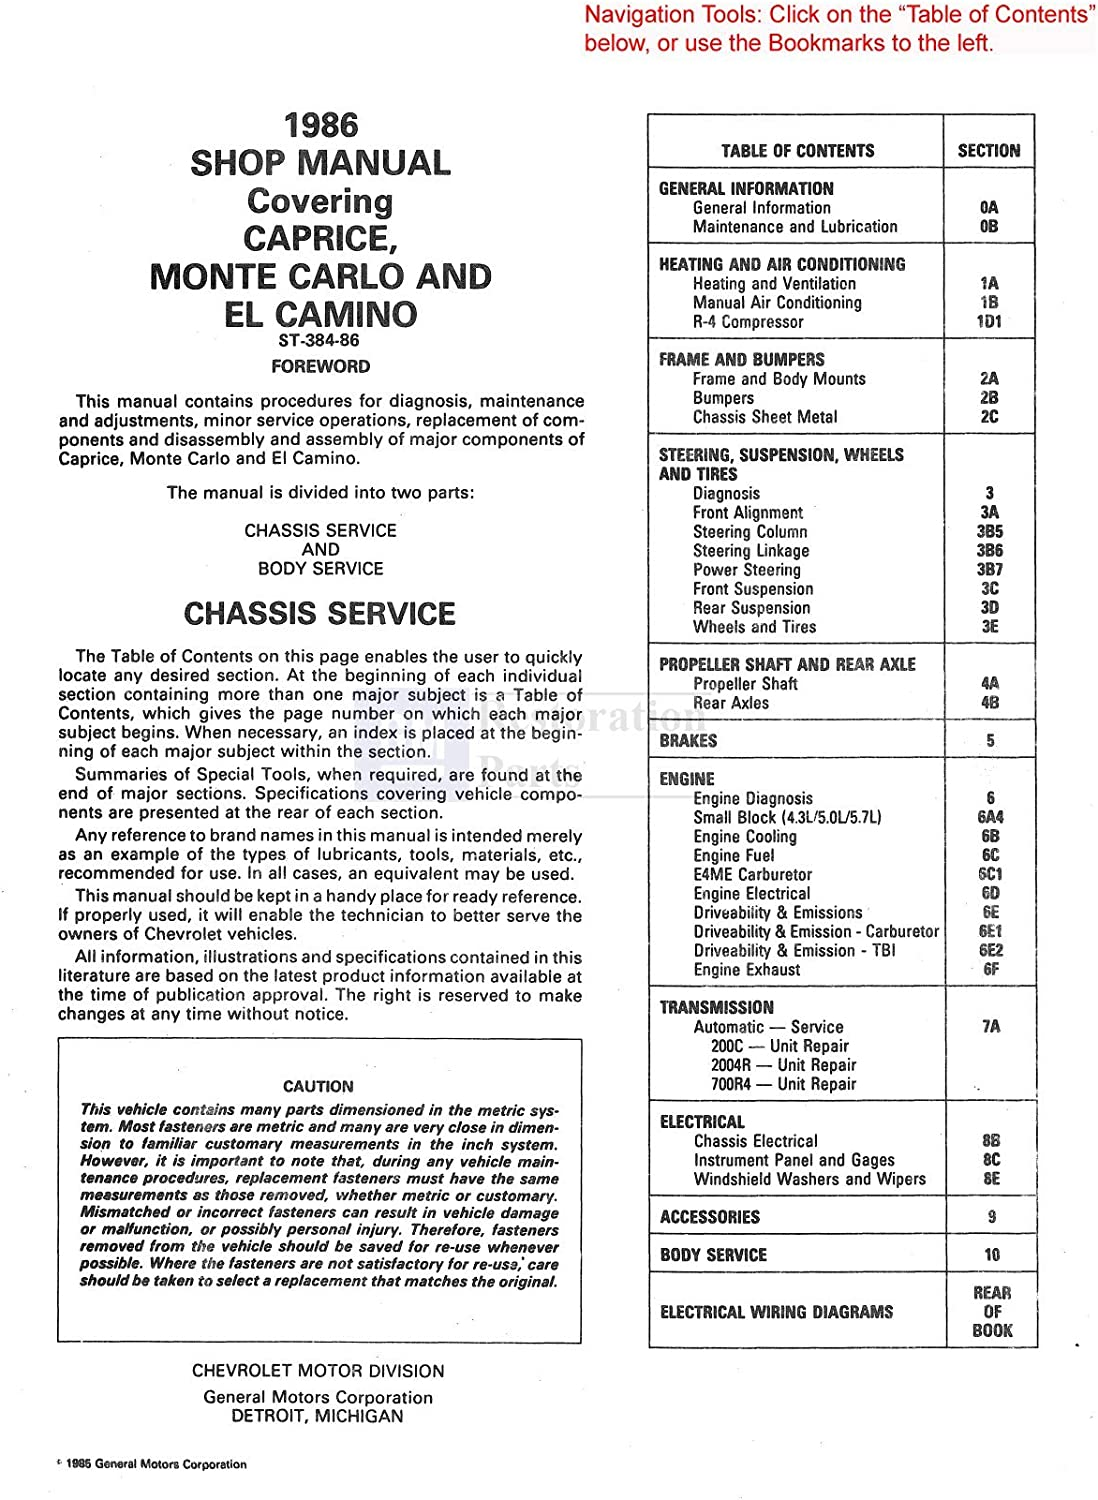 1988 Chevy Monte Carlo Electrical Diagnosis Manual Wiring Diagram Chevrolet Book Service Repair Manuals Vehicle Parts Accessories